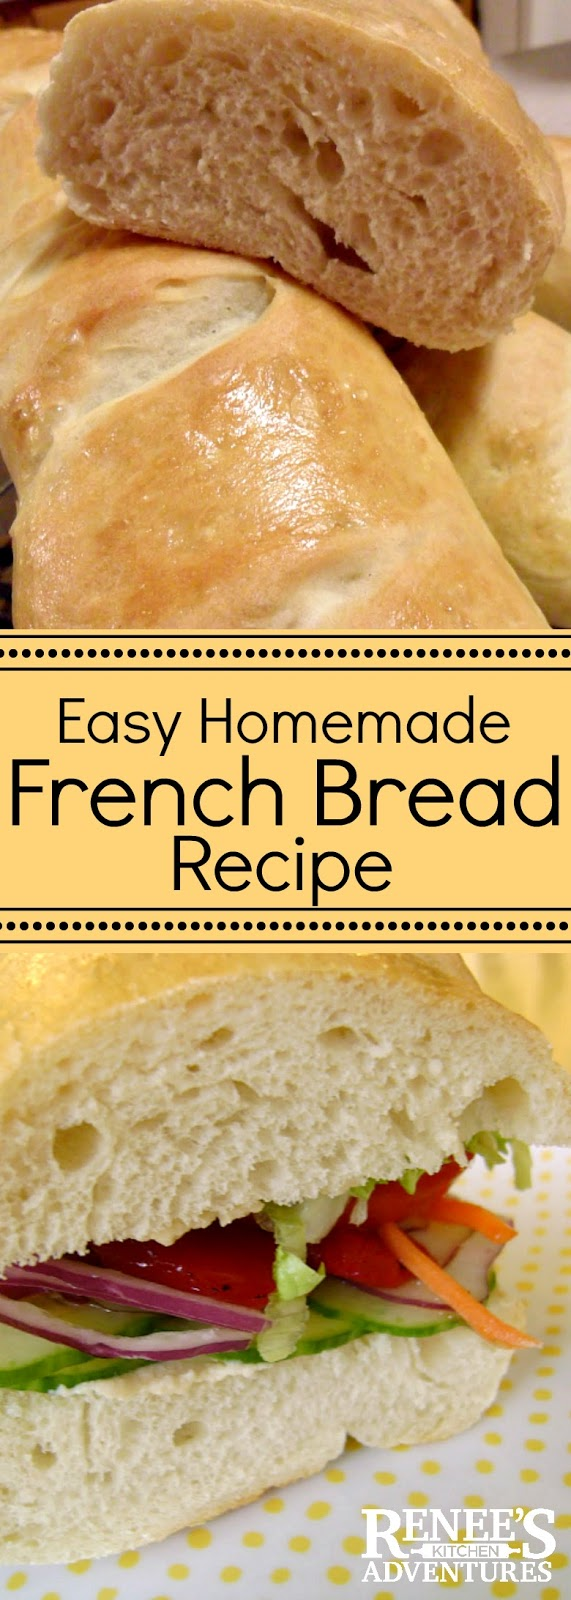 Easy Homemade French Bread Recipe| by Renee's Kitchen Adventures - easy recipe for homemade French Bread baked in your own oven! #frenchbread #bread #breadrecipe #easyrecipe #easybreadrecipe #homemadebread